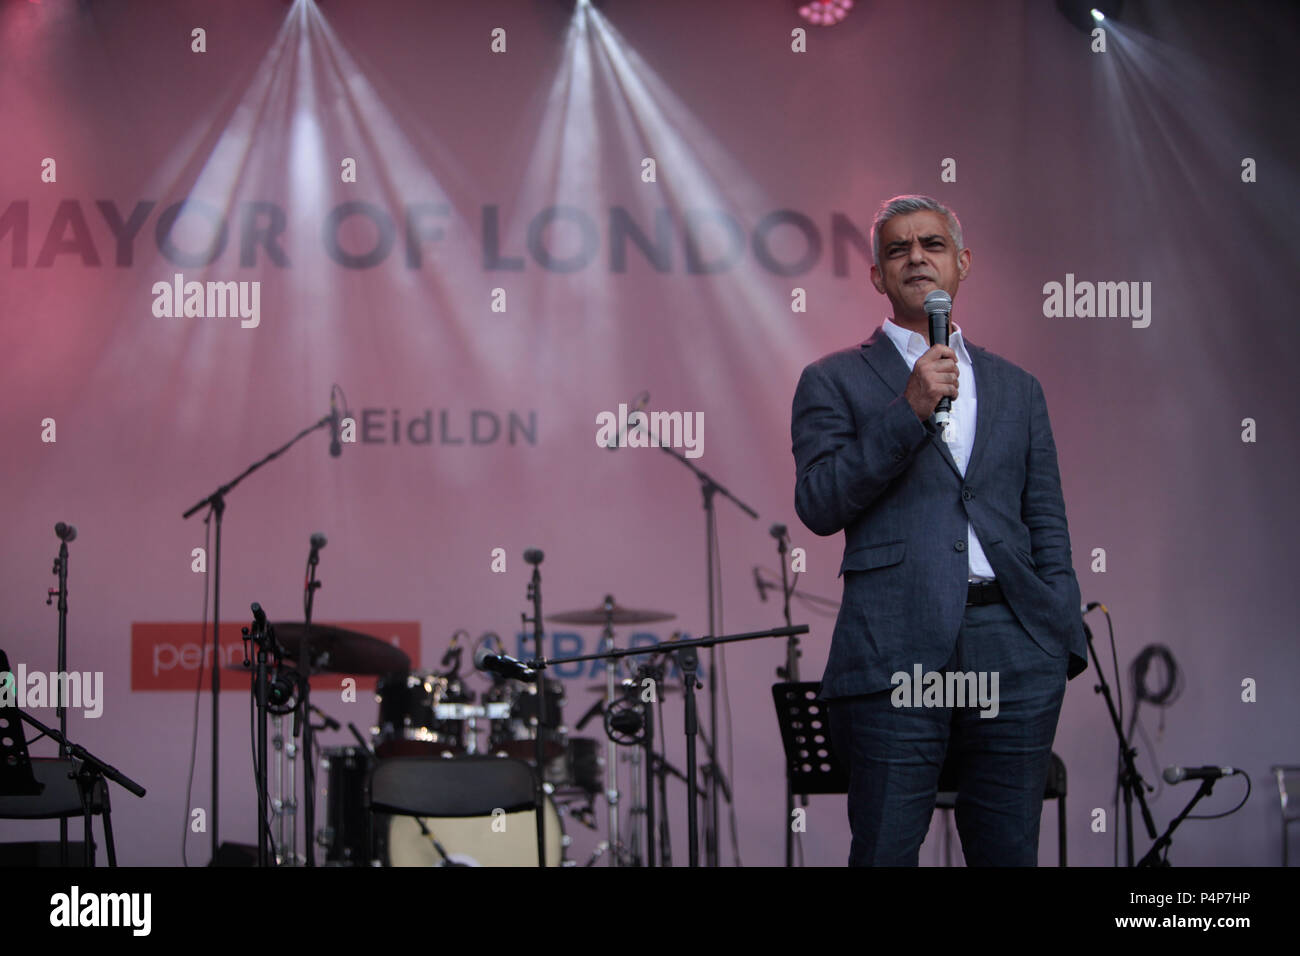 London, UK. 23rd June 2018. Sadiq Khan London Mayor speaking in the stage of Trafalgar Square that today was celebrating Eid, the Muslim religious holiday that marks the end of the holy  month of  Ramadan that marks the end of Sawm @Paul Quezada-Neiman Credit: Paul Quezada-Neiman/Alamy Live News - Stock Image